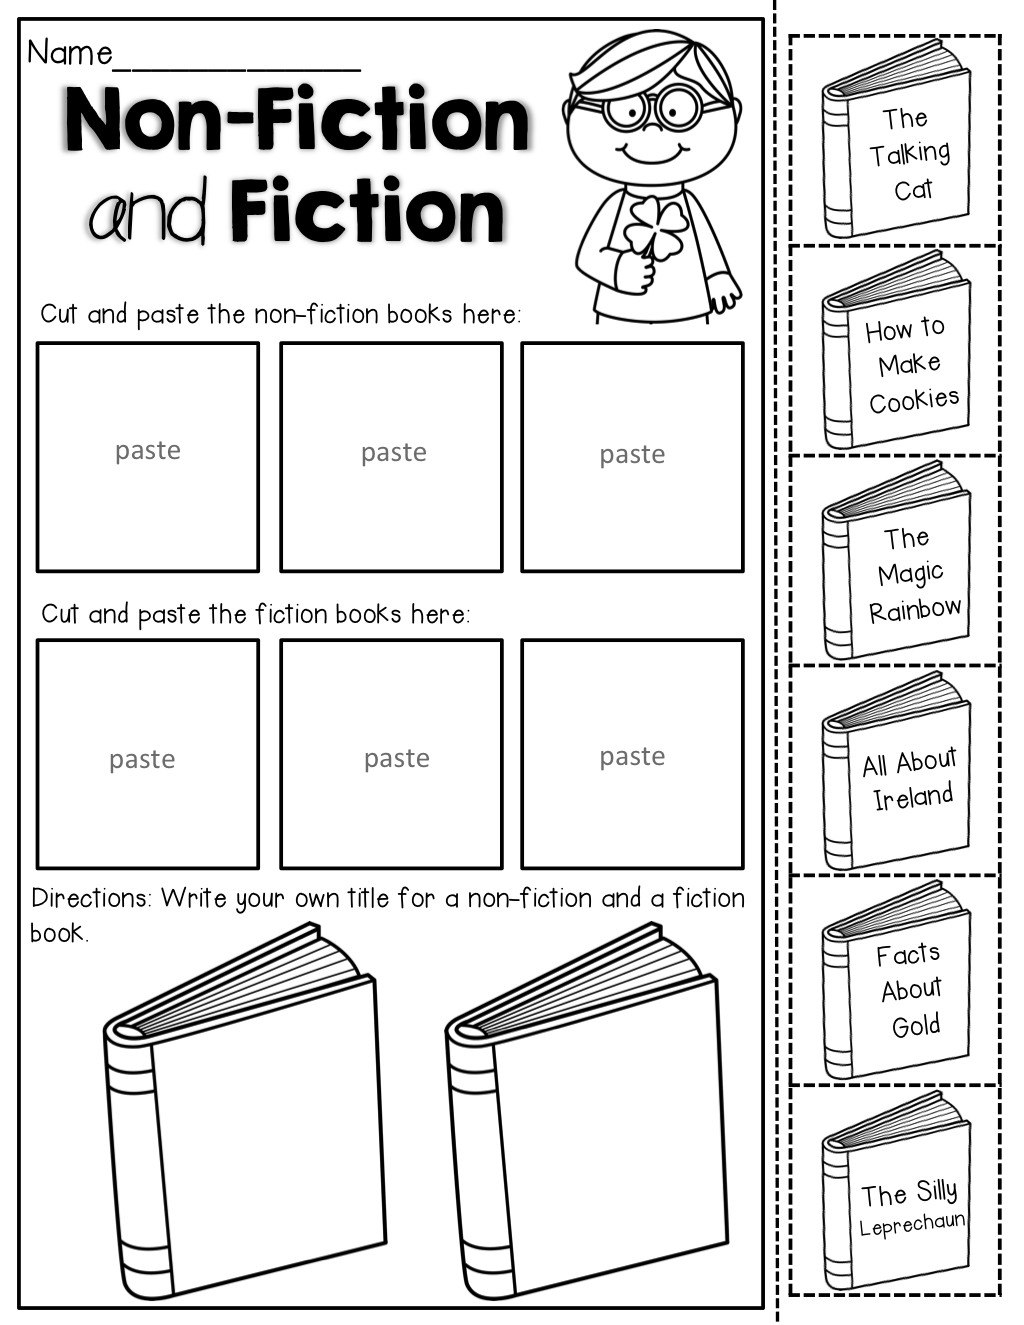 1000+ ideas about Fiction Vs Nonfiction on Pinterest | Non Fiction ...